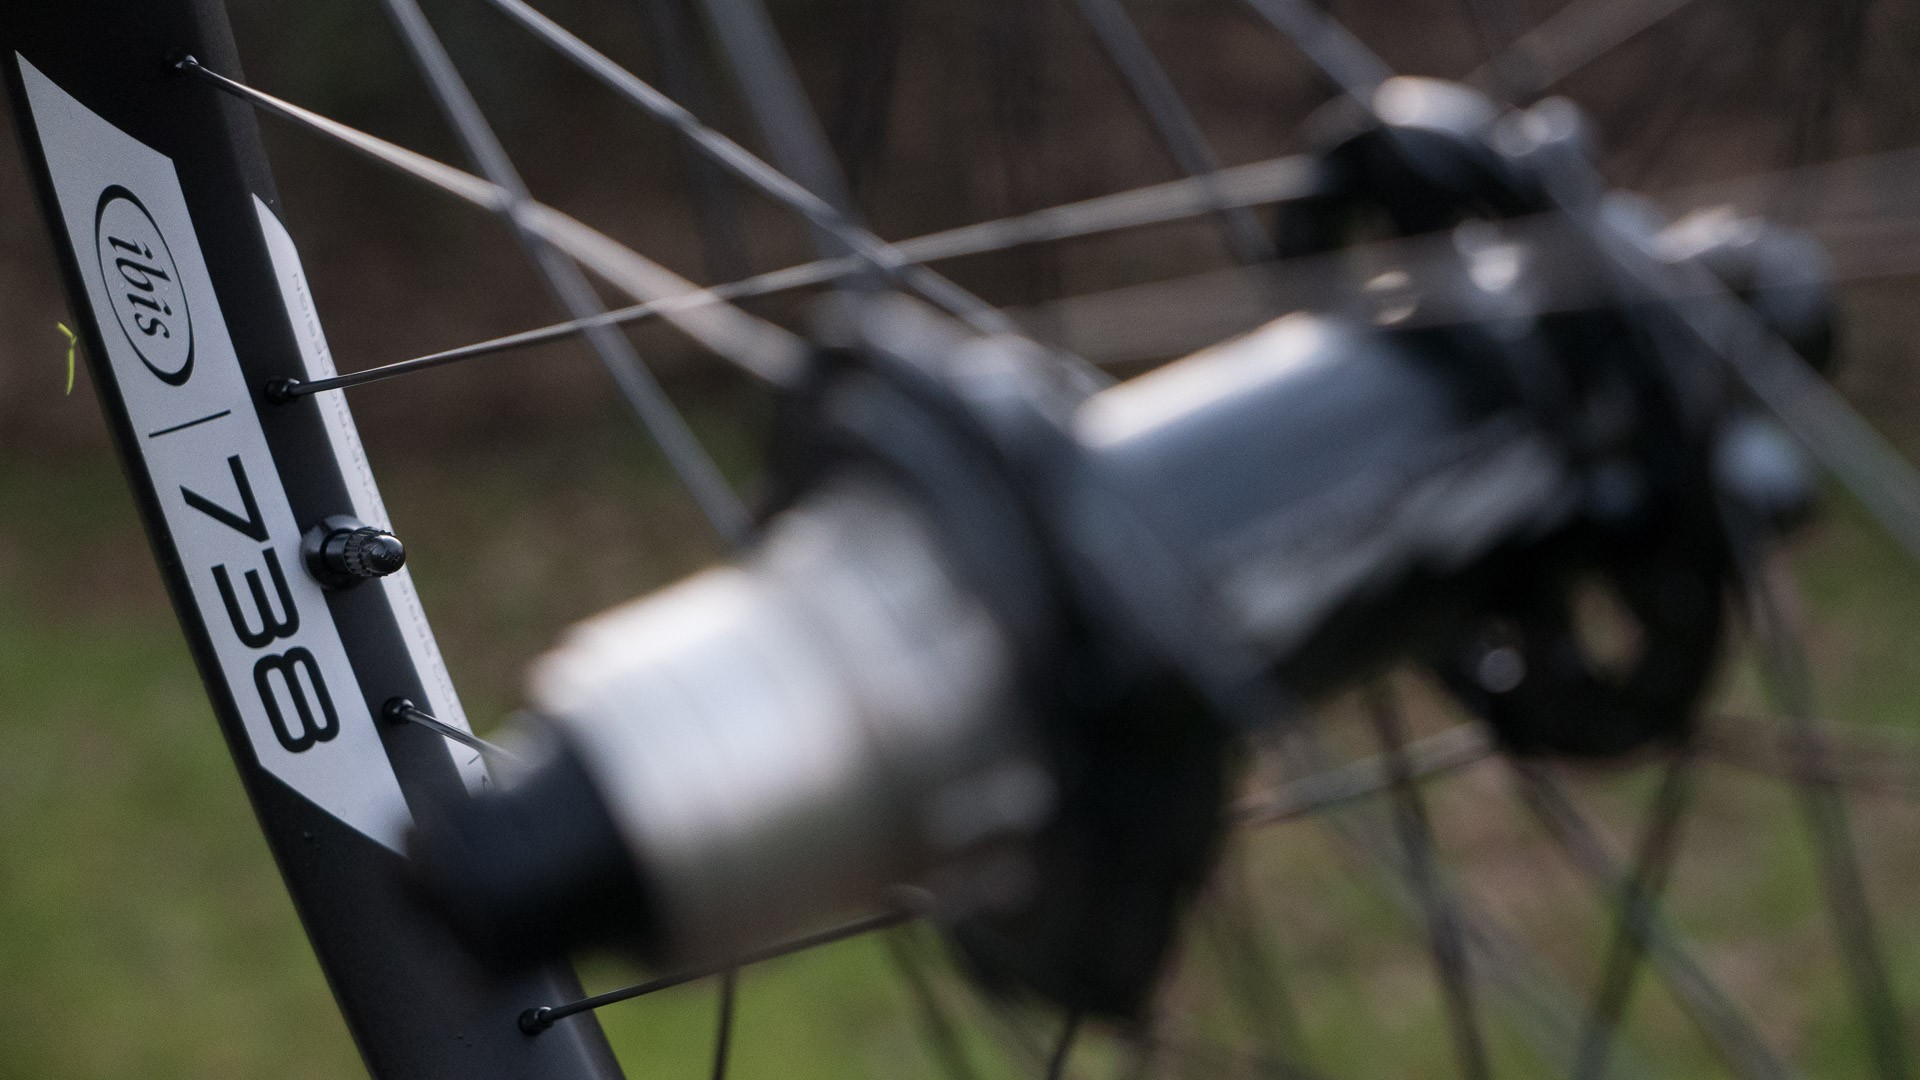 The 738 wheelset marries 27.5 rims with a 38mm external width to Ibis' own brand hubs